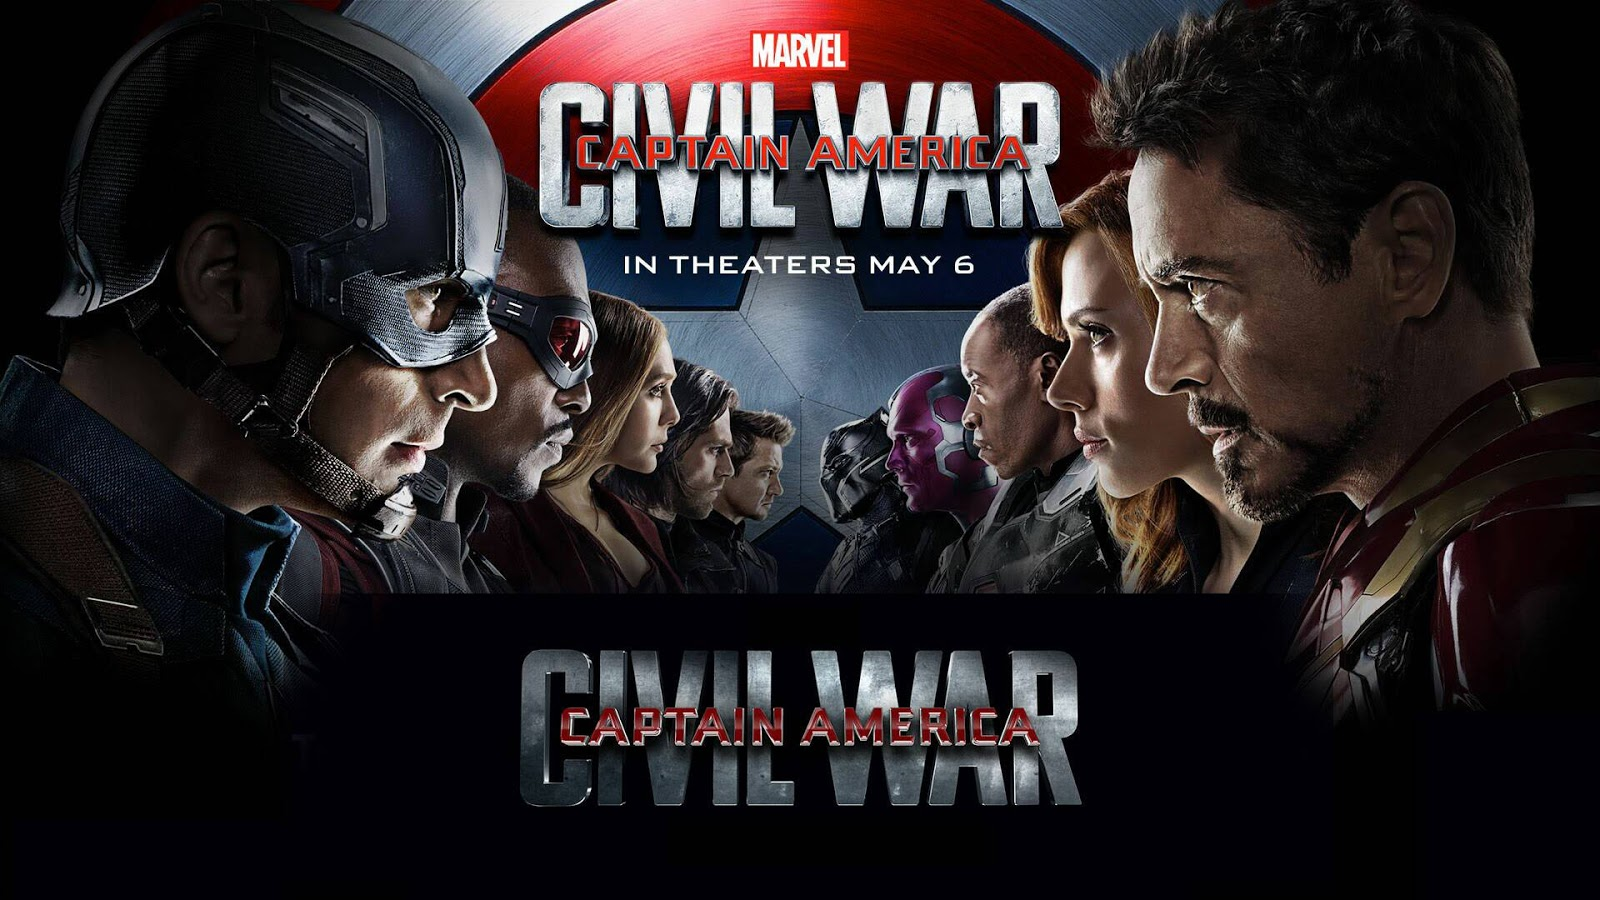 Captain America Civil War 2016 English Movie Download Free HD DVDrip